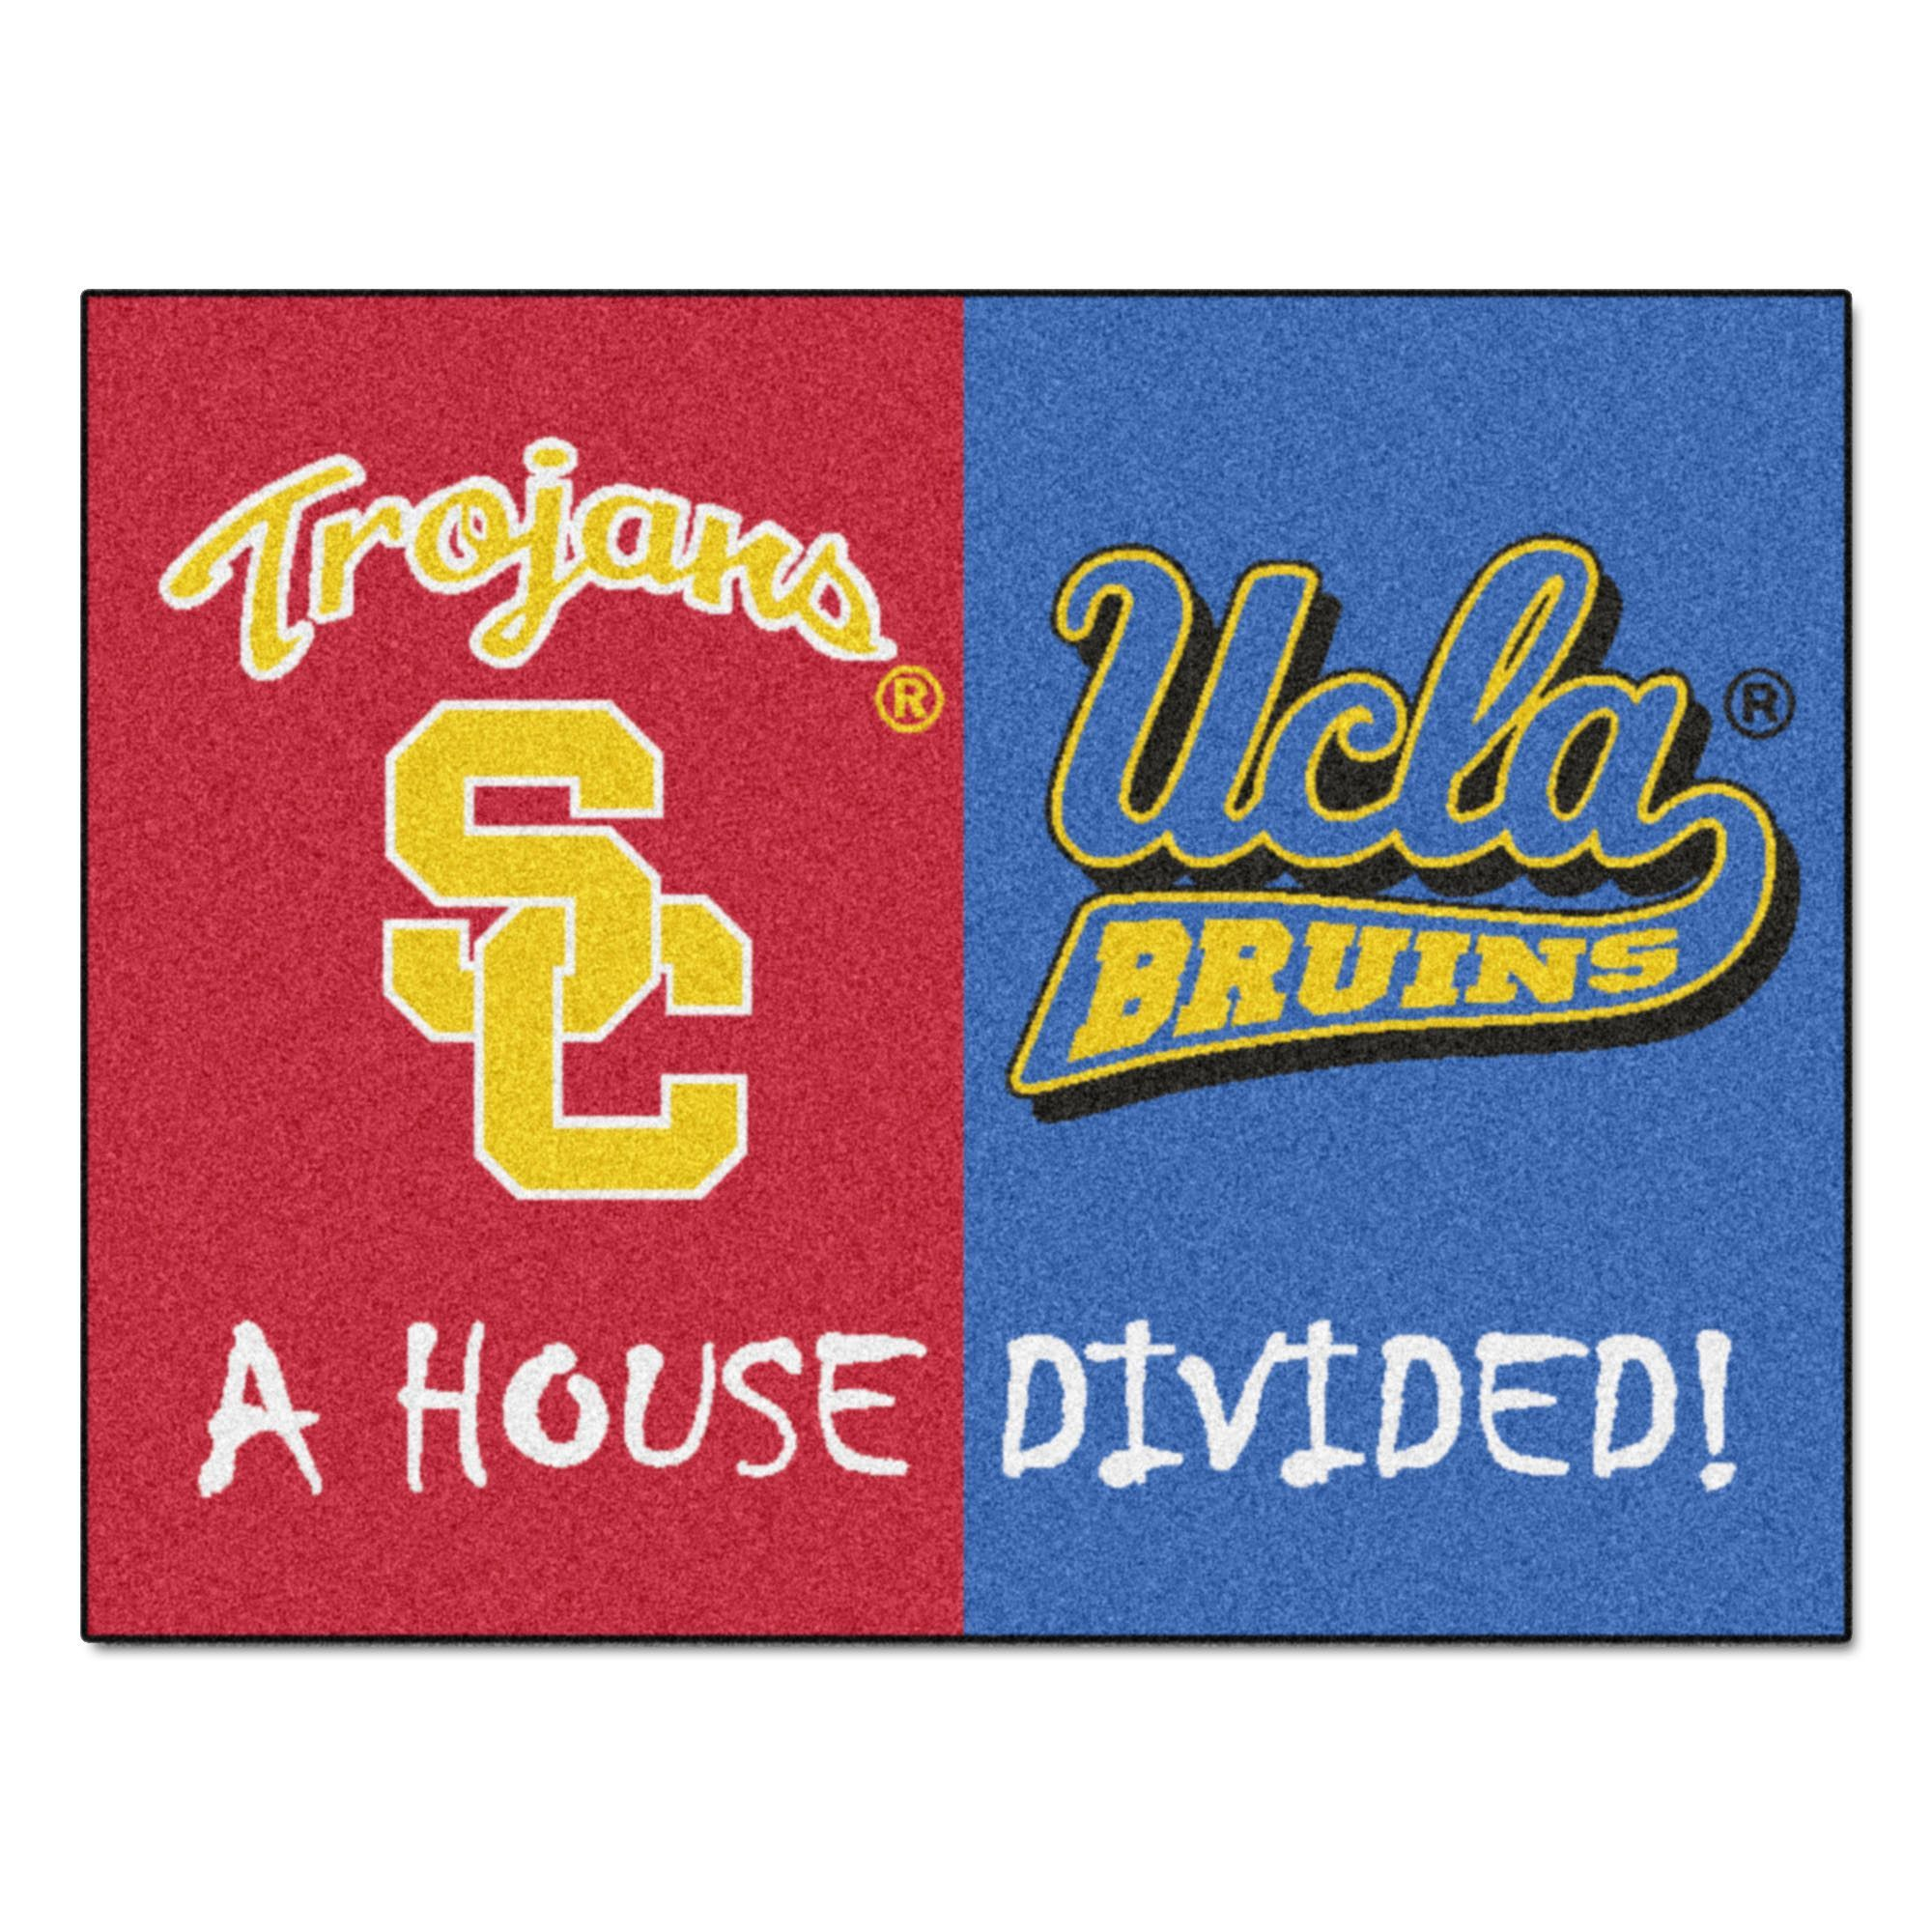 Usc ucla ncaa house divided rugs x vinyls carpets and